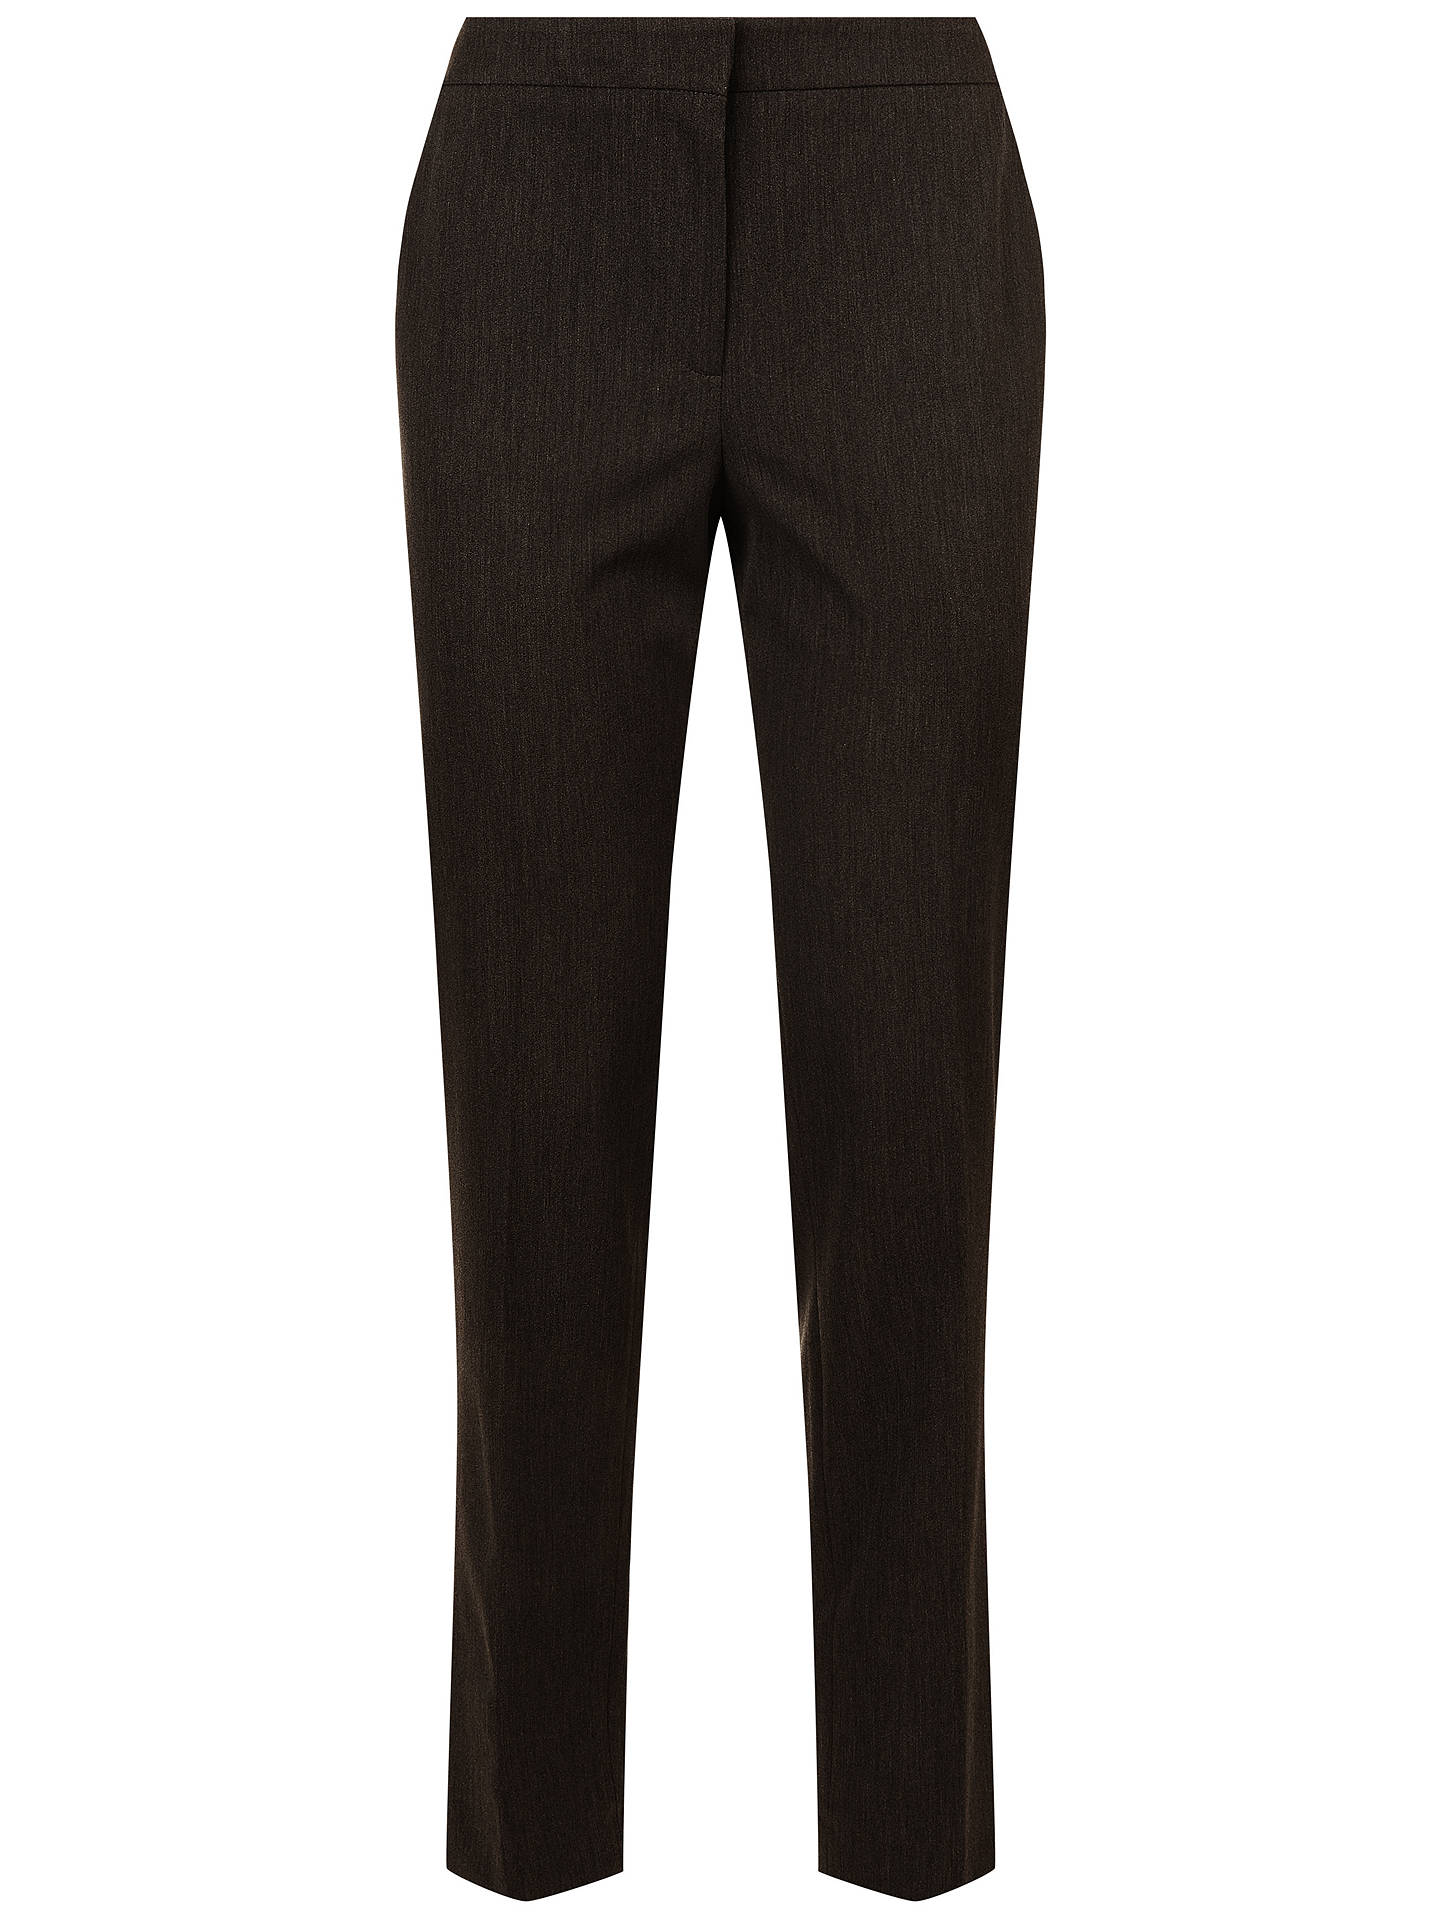 BuyFenn Wright Manson Raye Trousers, Black, 12 Online at johnlewis.com